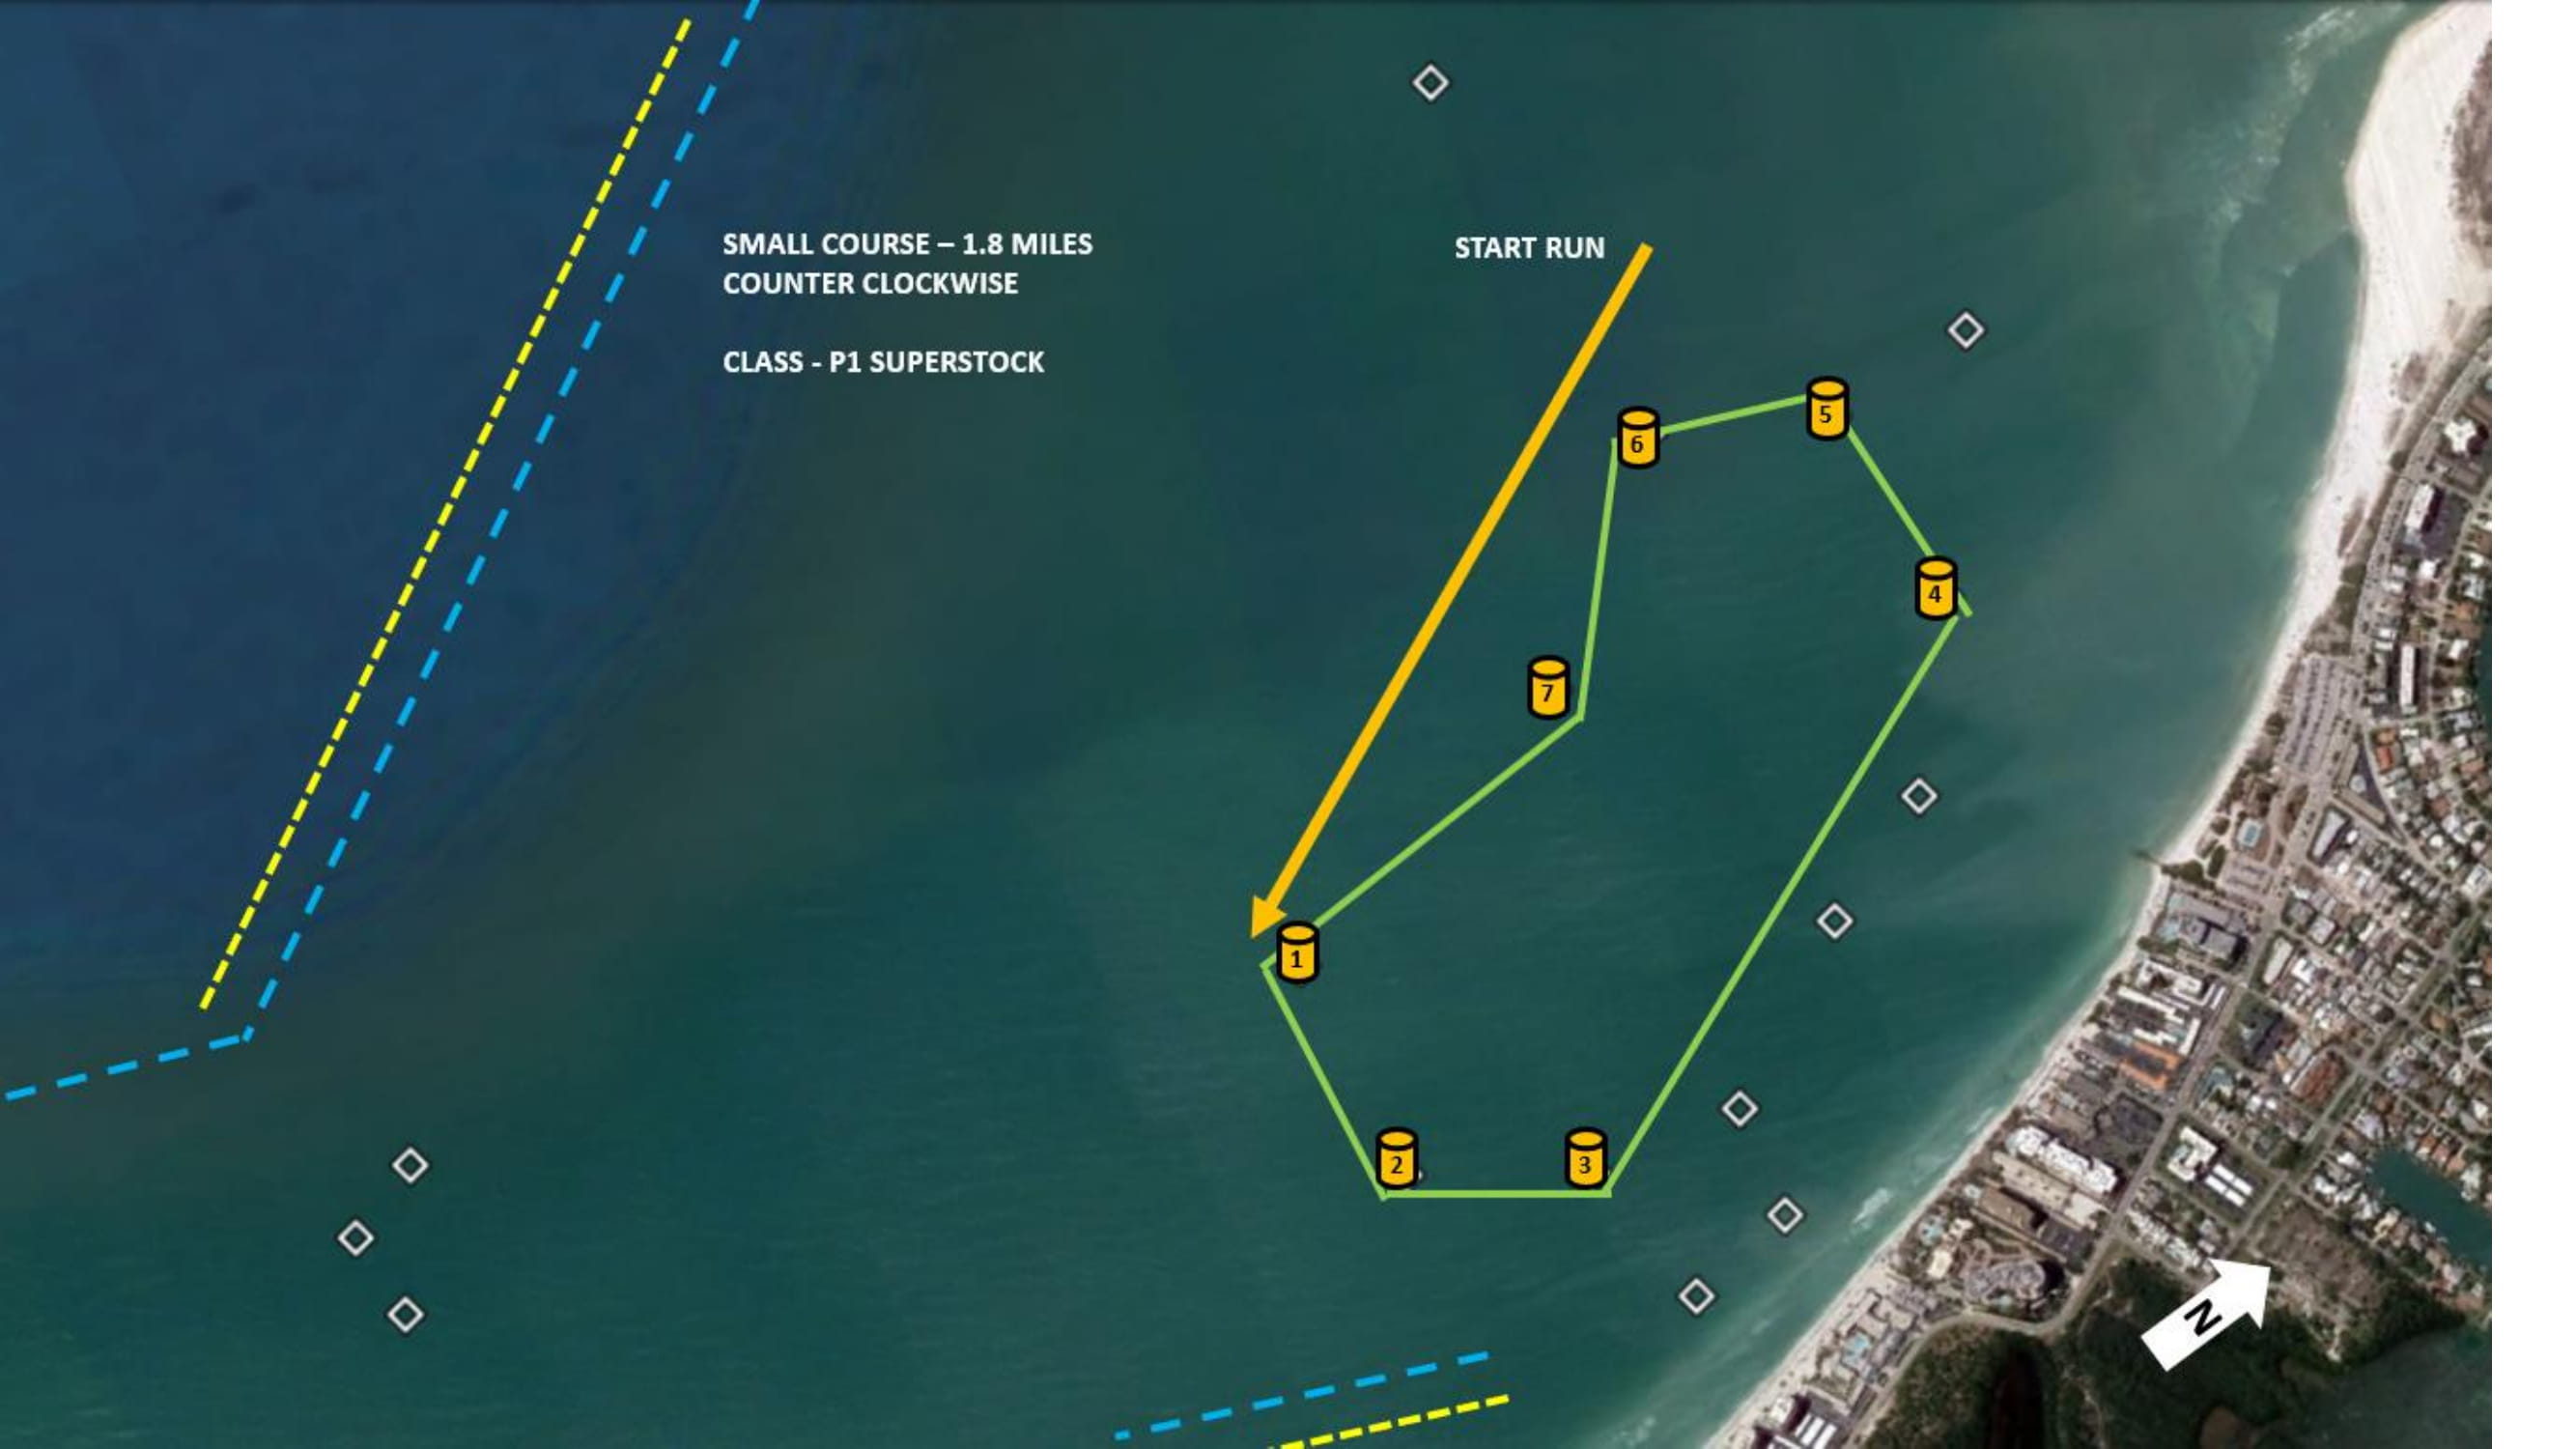 Sarasota Offshore Grand Prix Super Stock Boat Course